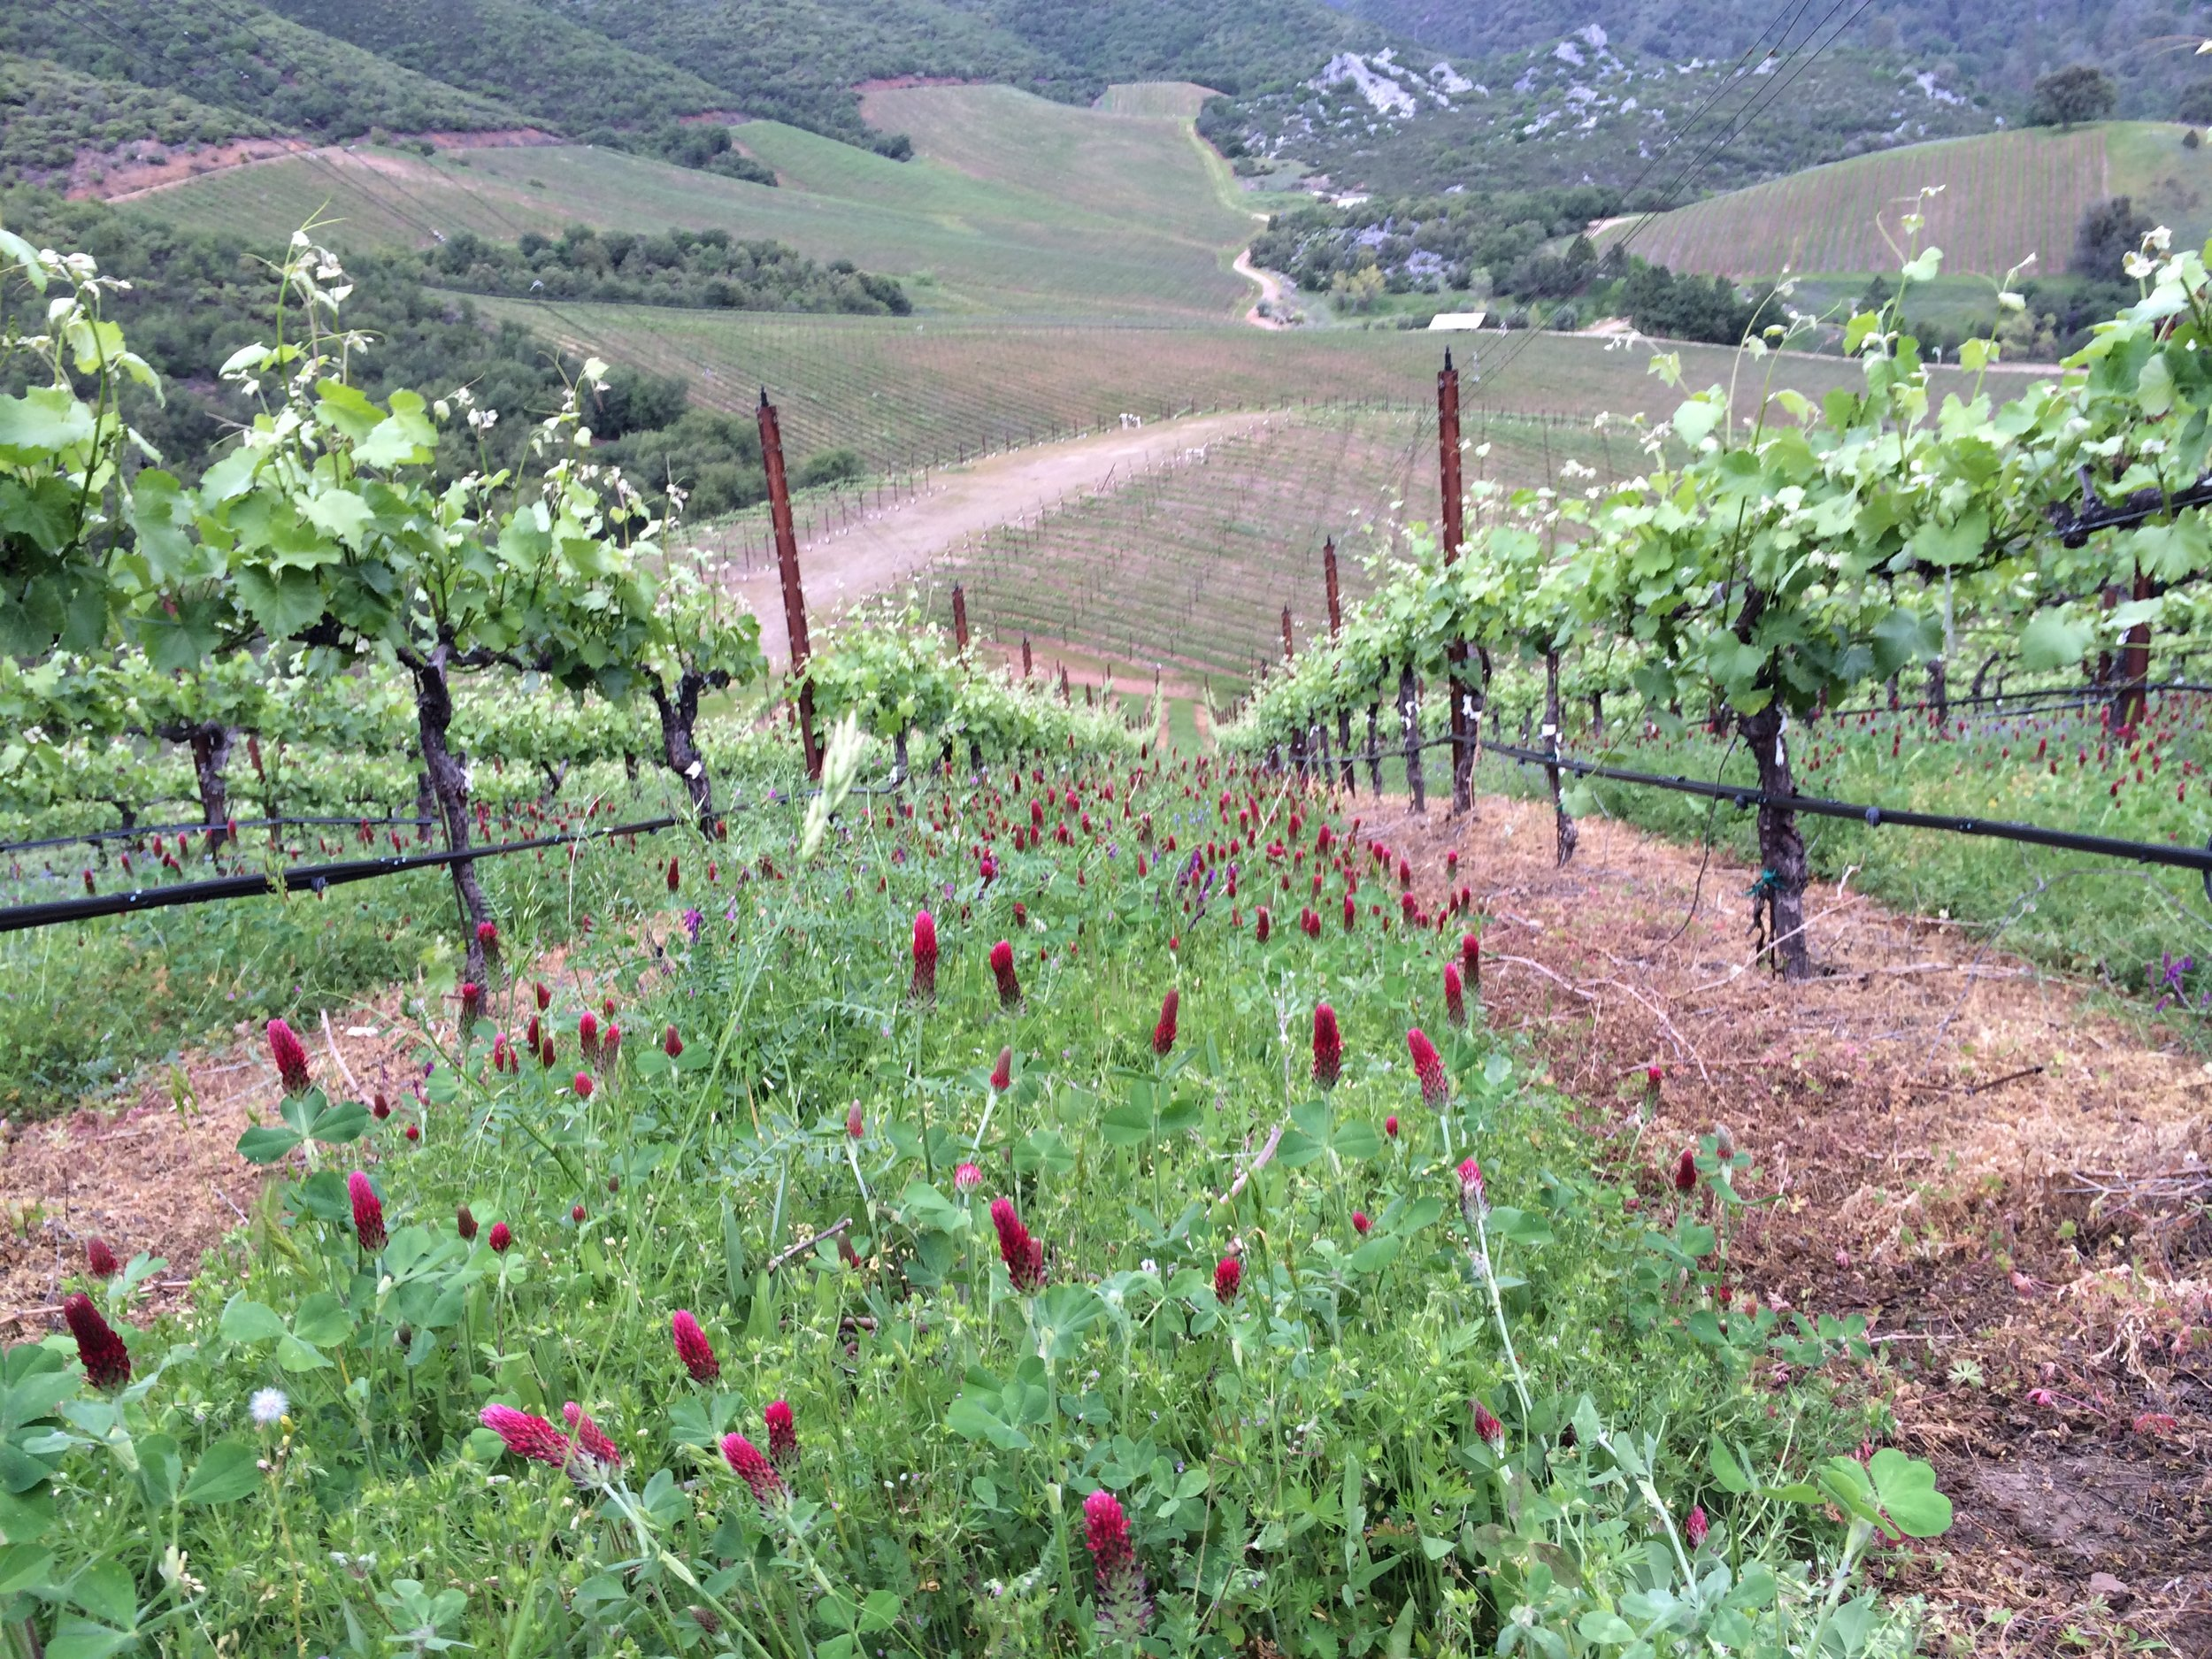 Steep row of vines with cover crop